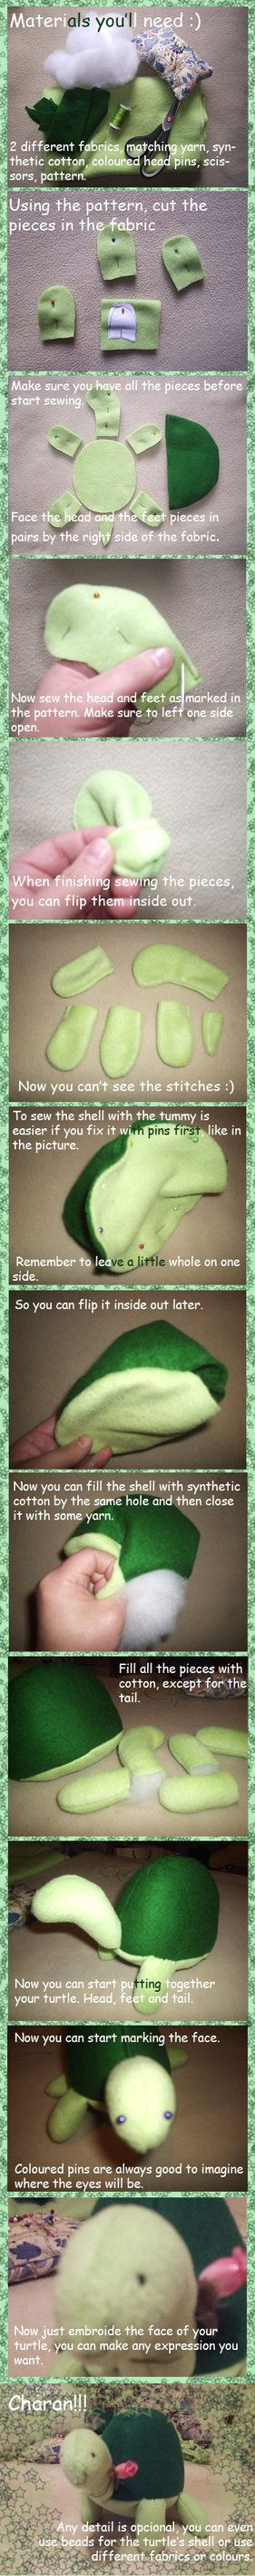 Turtle Tutorial by Piripanda on deviantART. Pattern available on page http://piripanda.deviantart.com/art/Turtle-Tutorial-43214050?q=boost%3Apopular%20in%3Aresources%2Ftutorials%2Fartisancrafts&qo=116